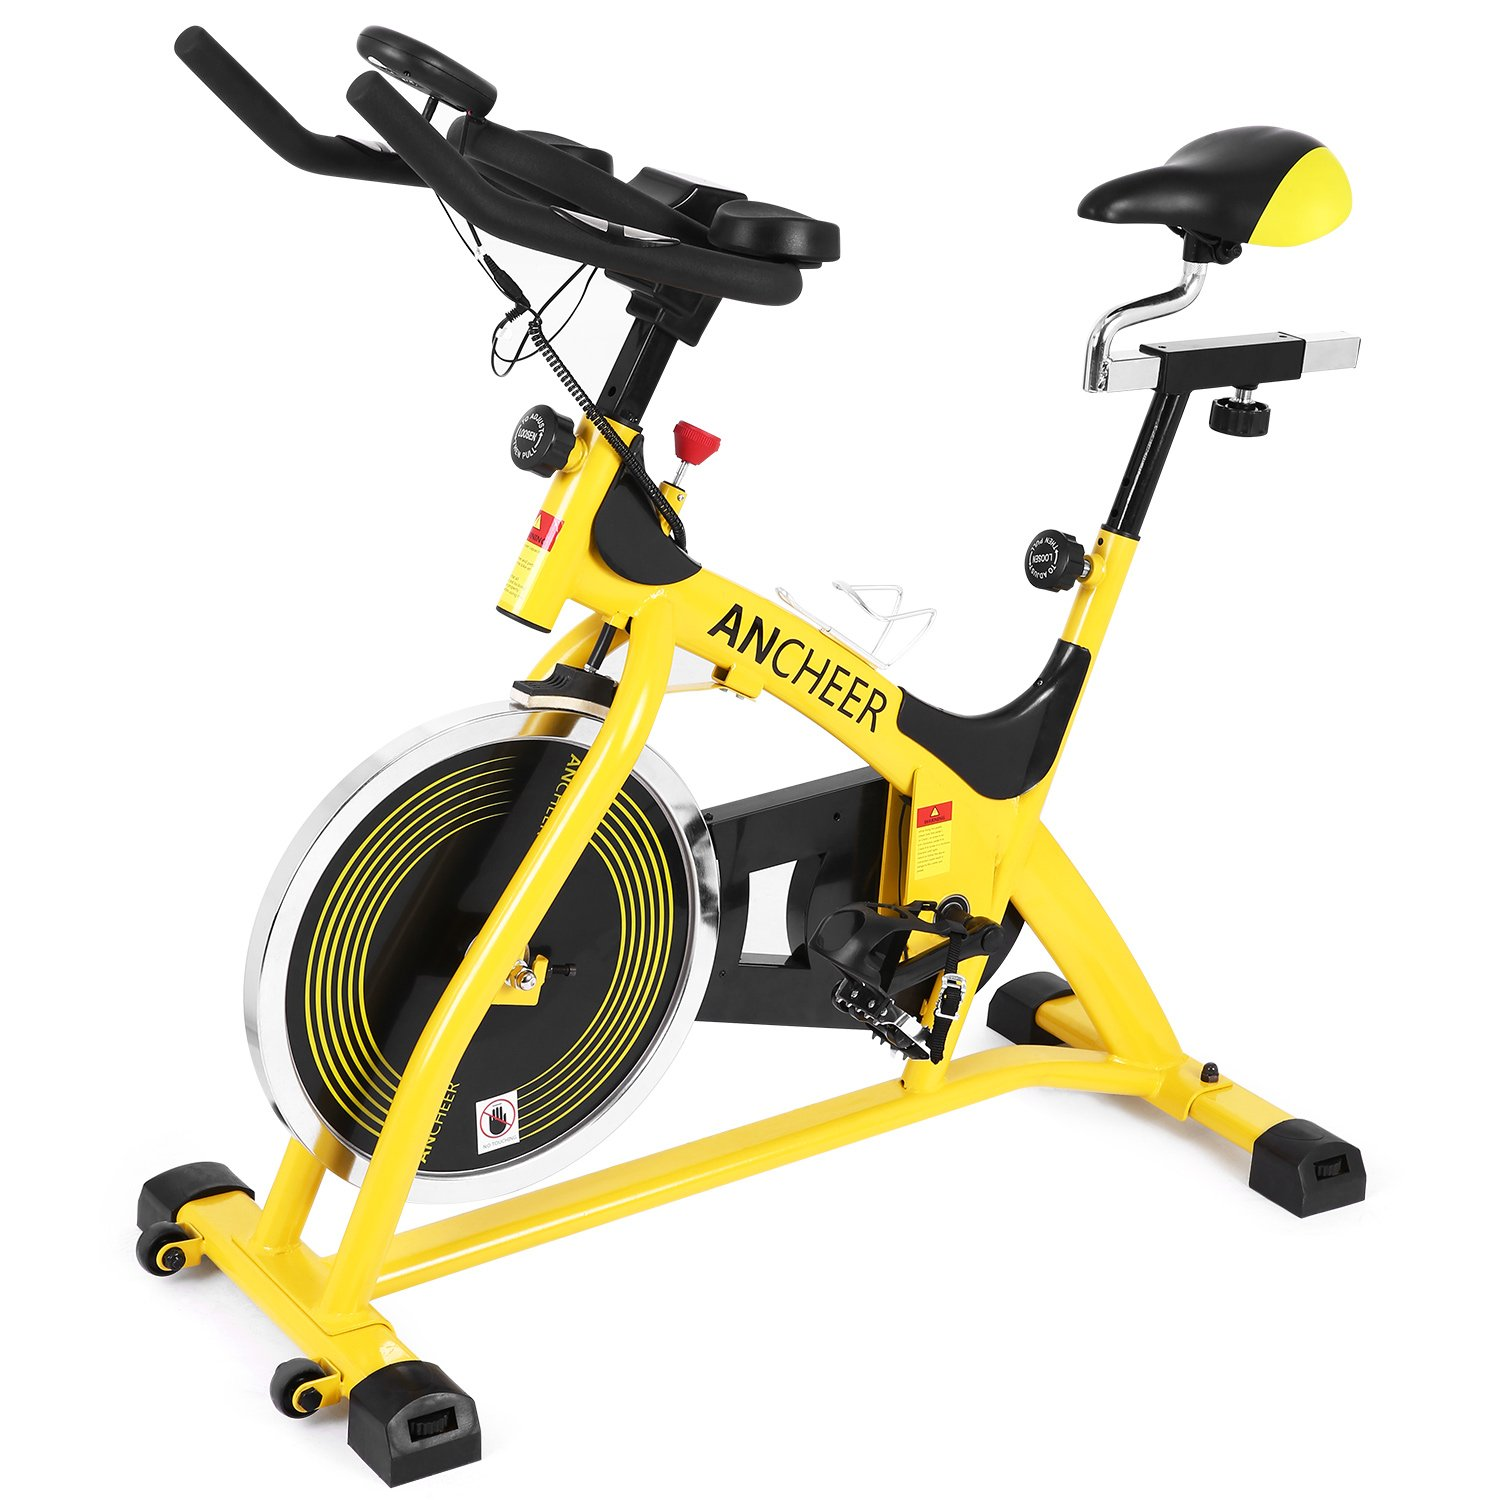 ANCHEER Stationary Bike, 40 LBS Flywheel Belt Drive Indoor Cycling Exercise Bike with Pulse, Elbow Tray (Model: ANCHEER-A5001) (Yellow)